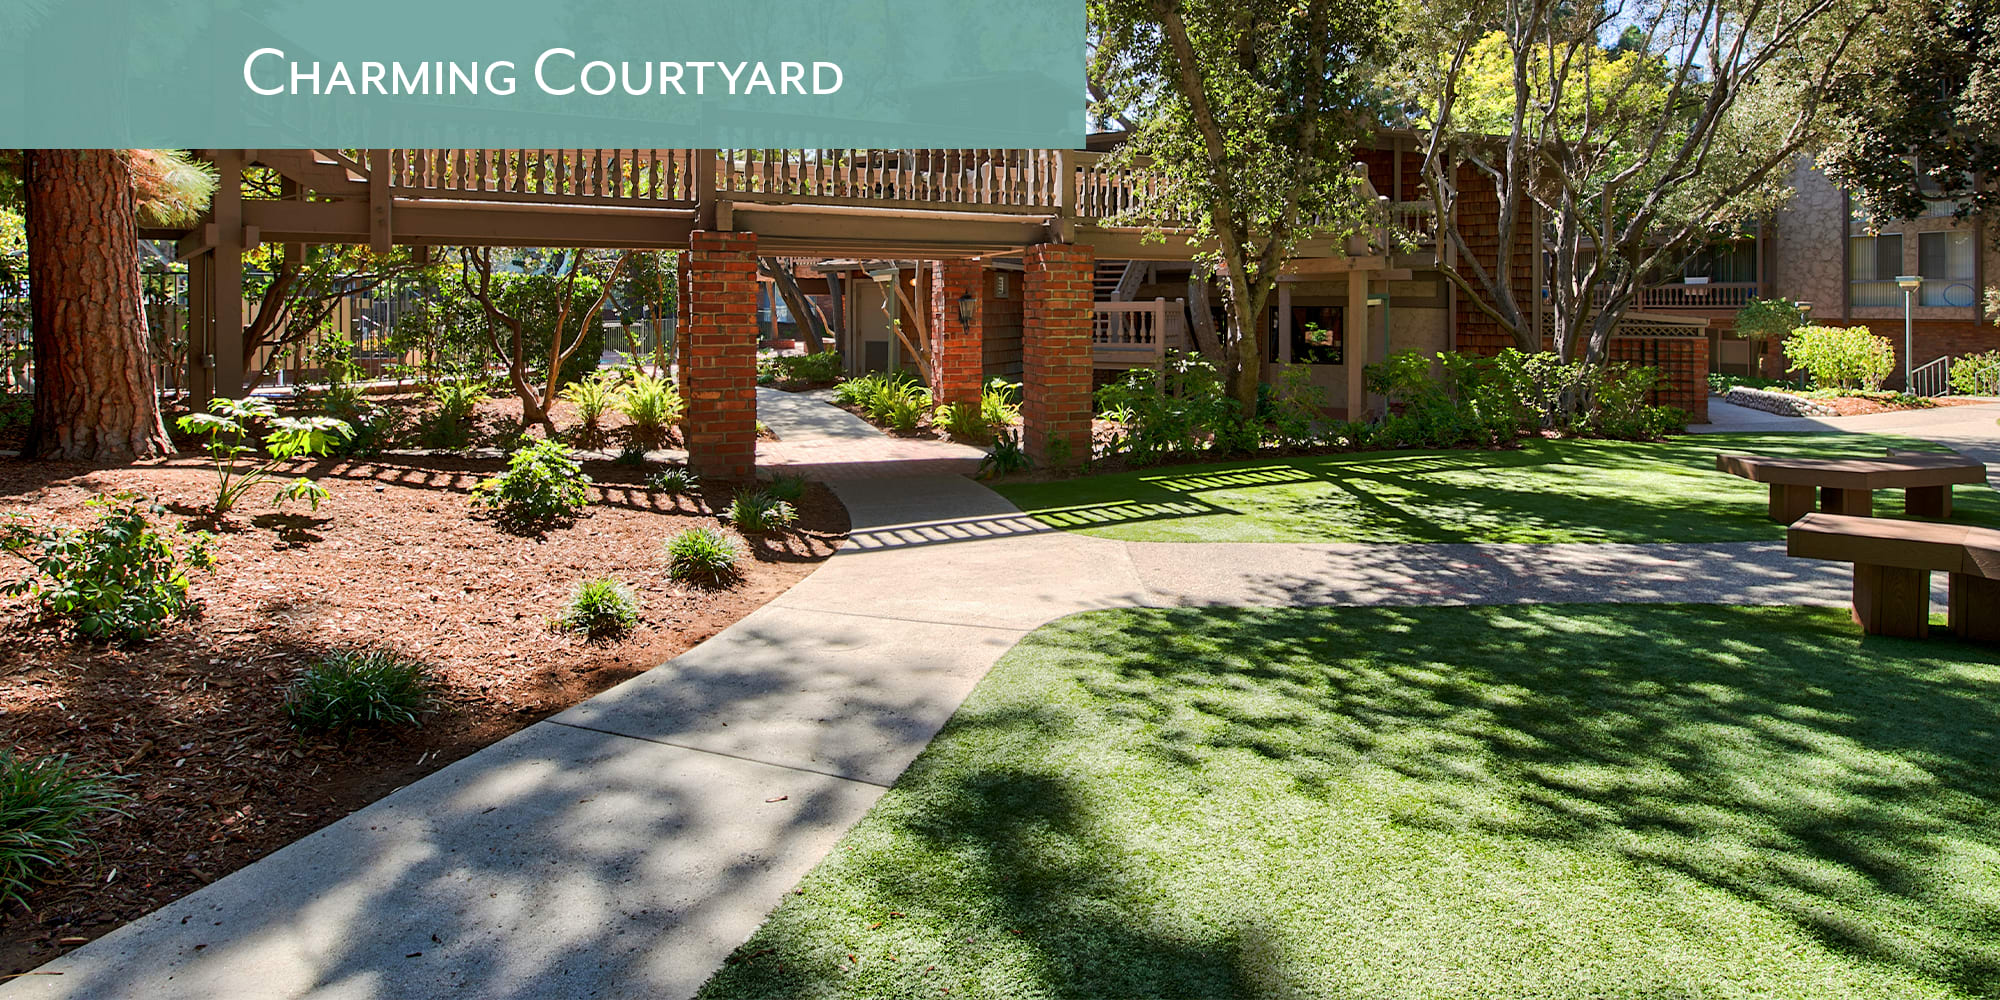 Charming courtyards at The Meadows in Culver City, California